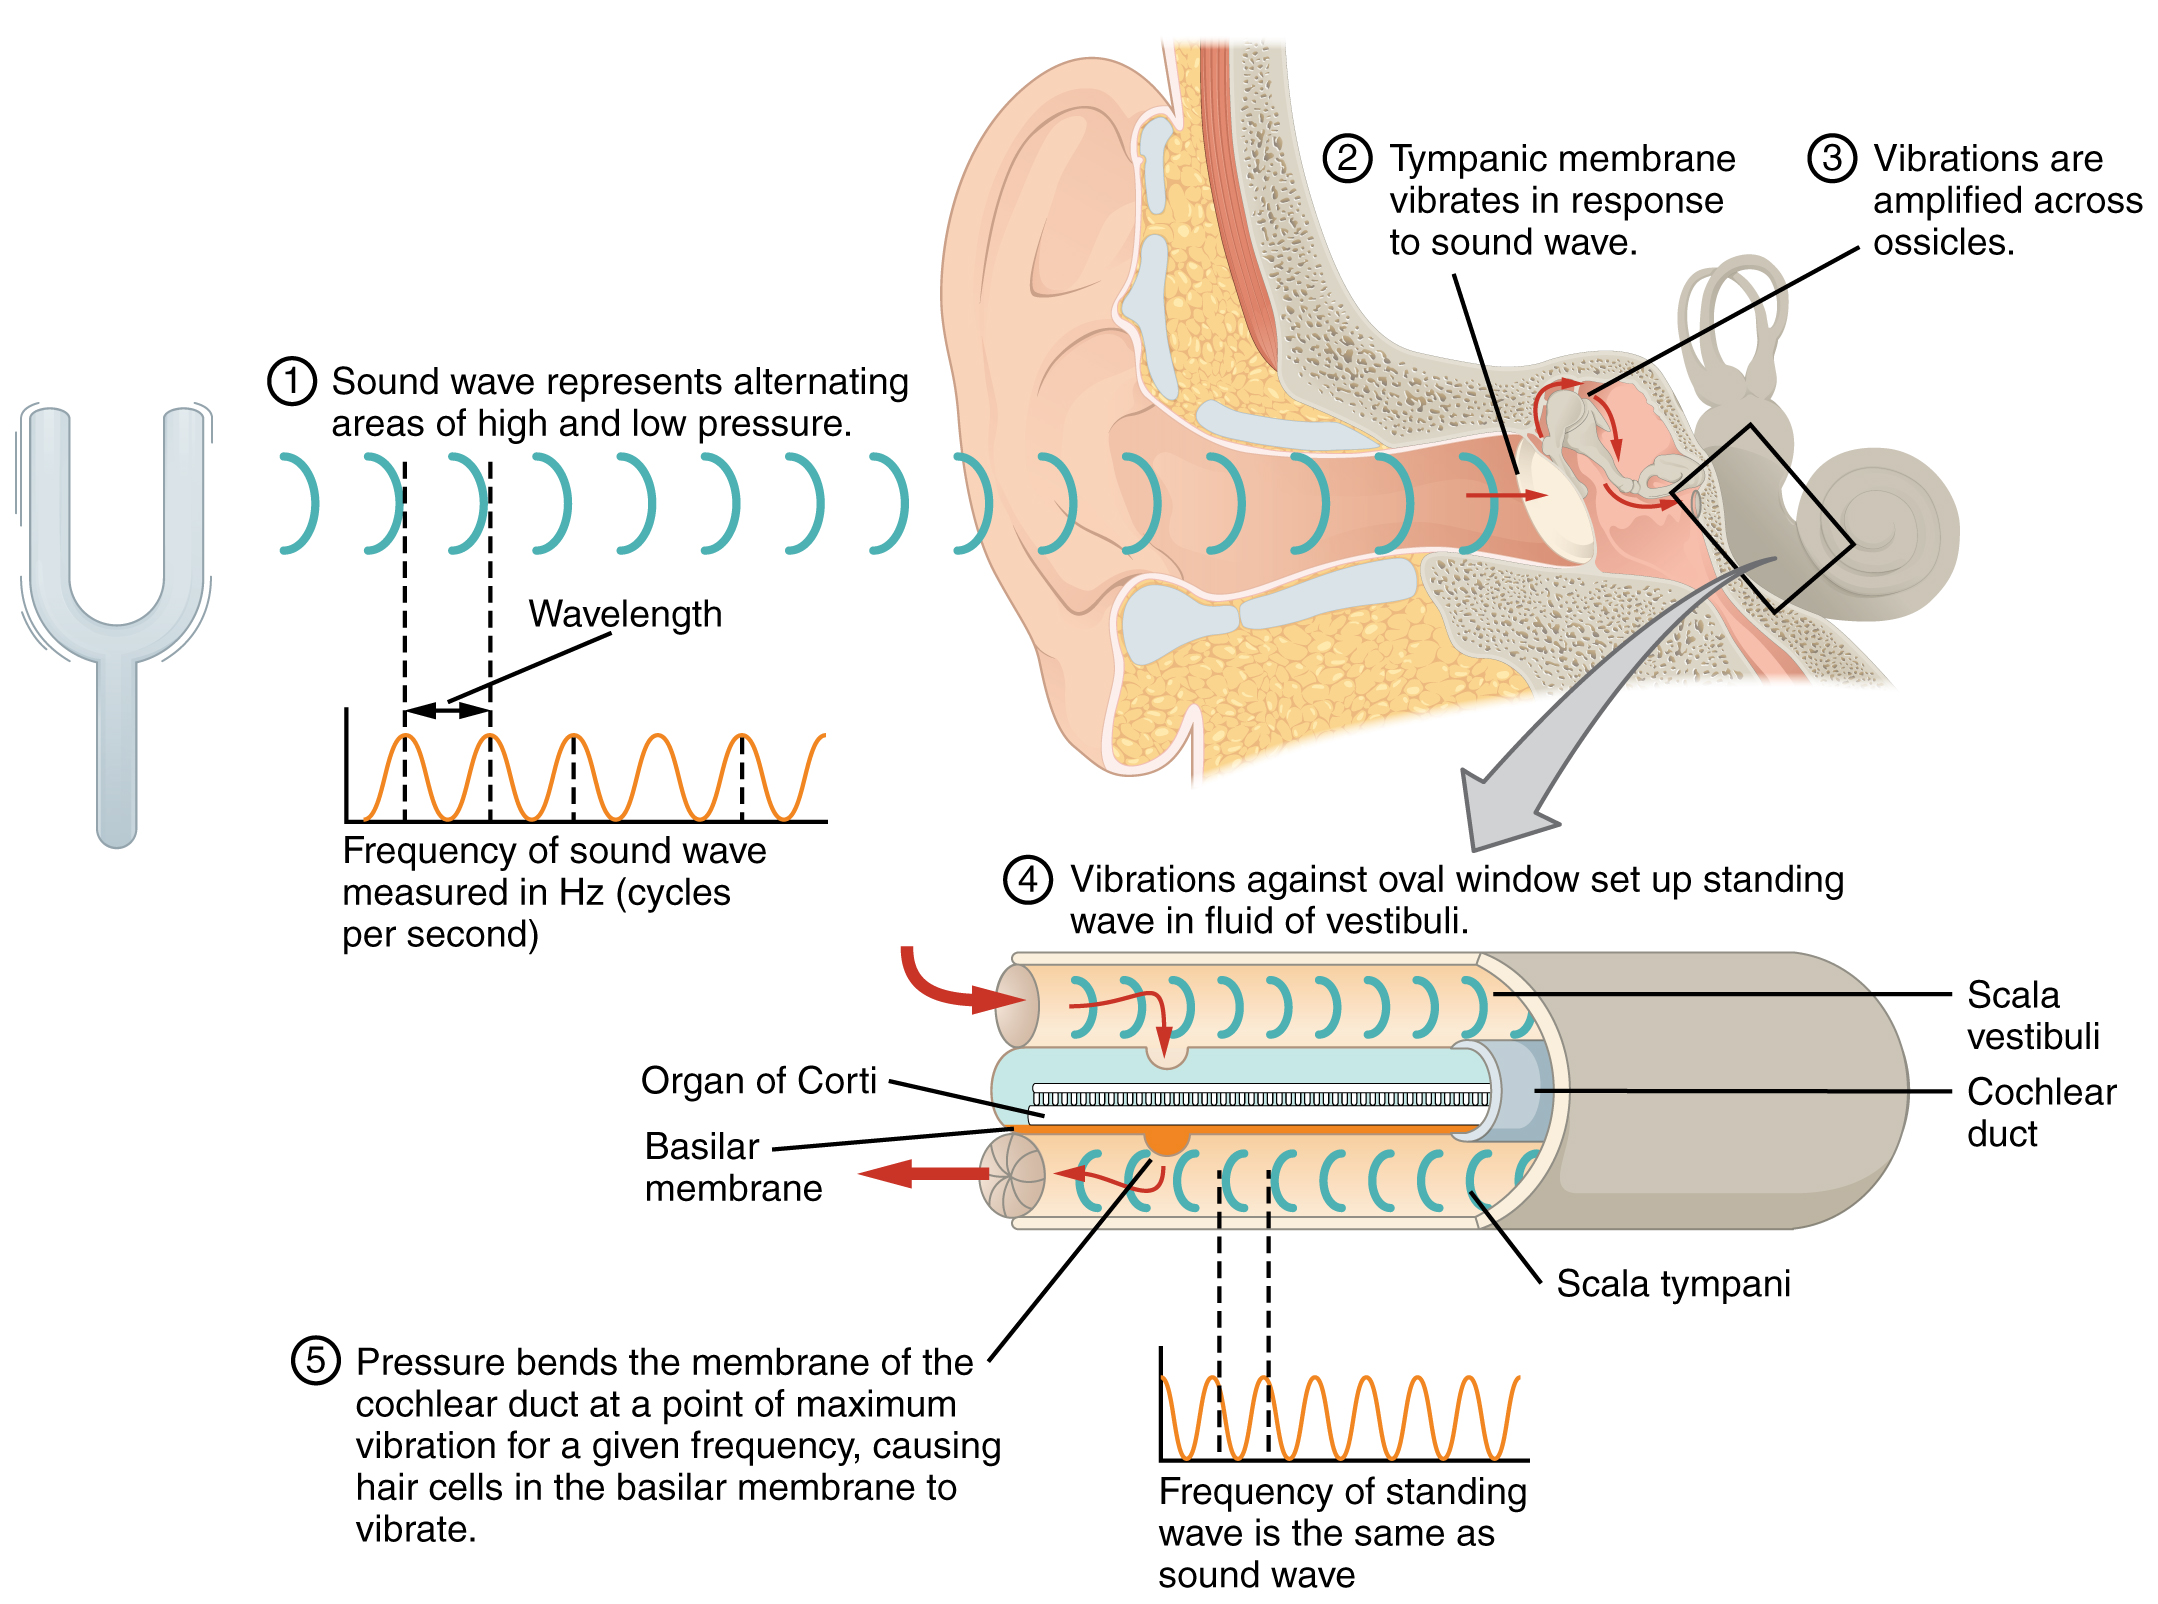 This diagram shows how sound waves travel through the ear, and each step details the process.